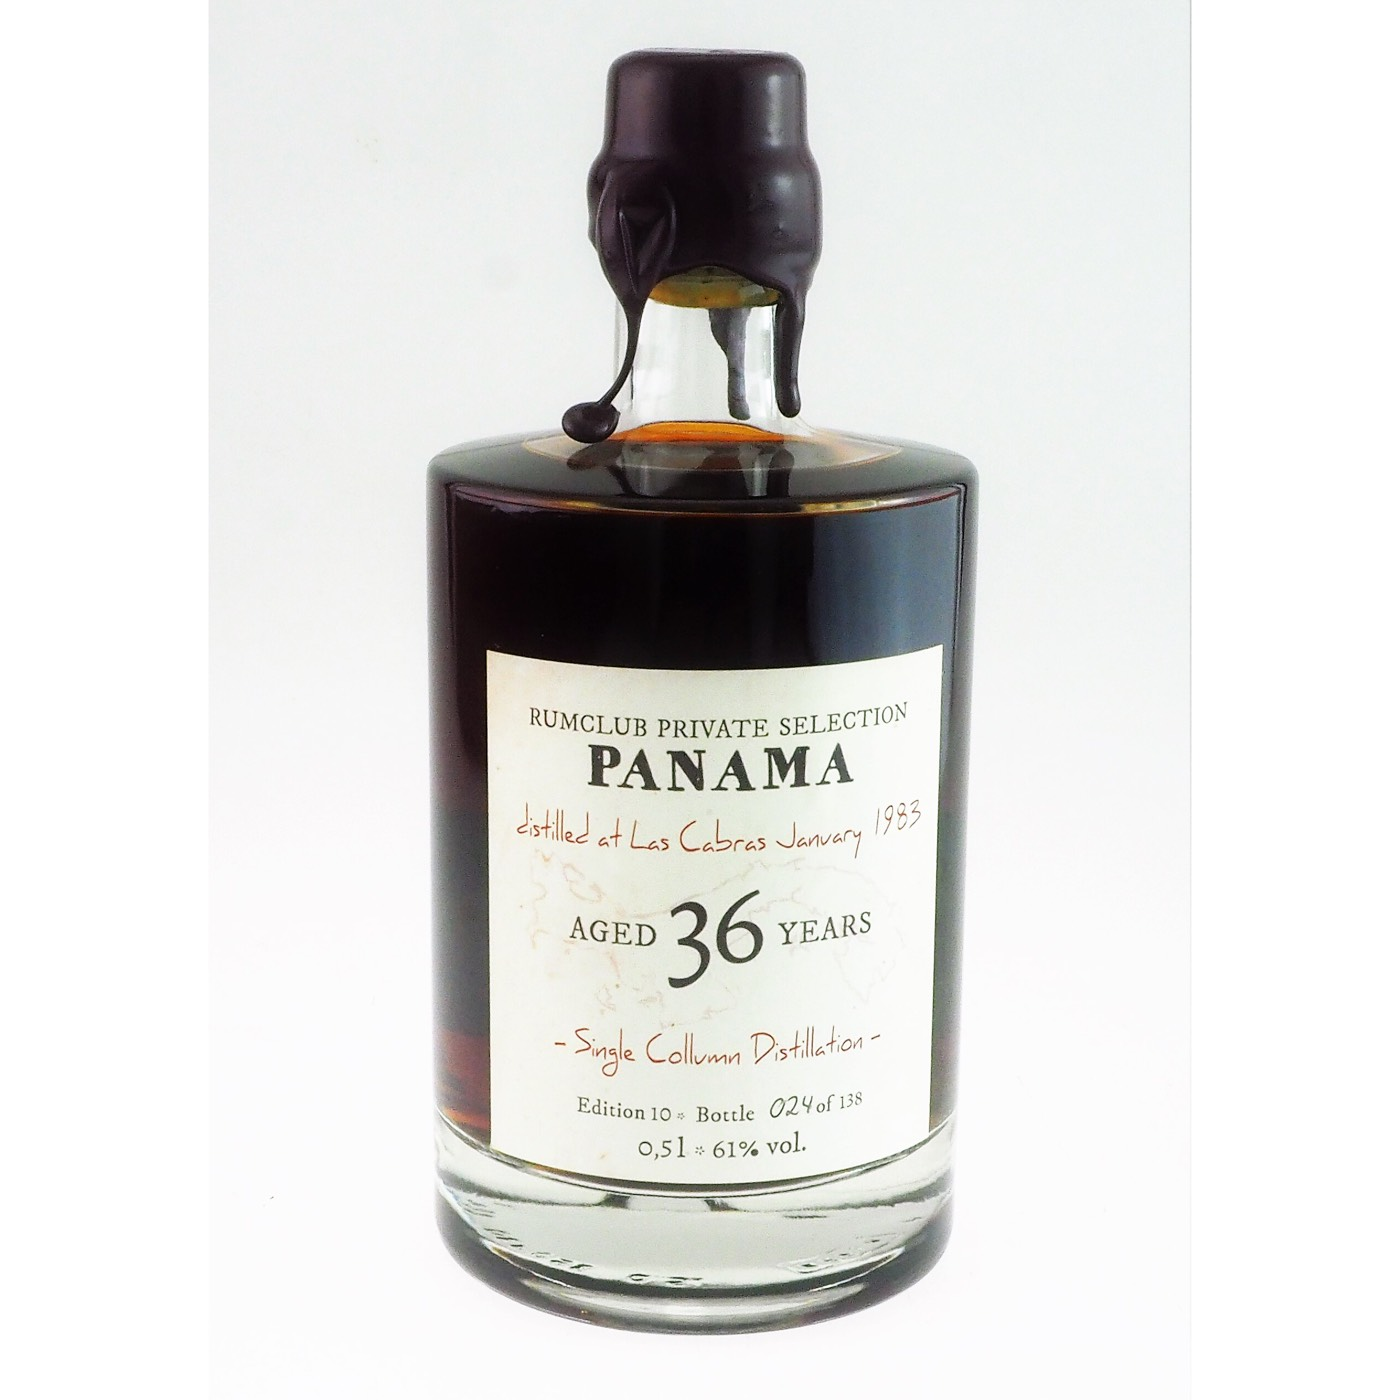 Bottle image of Rumclub Private Selection Ed. 10 Don Pancho Origenes